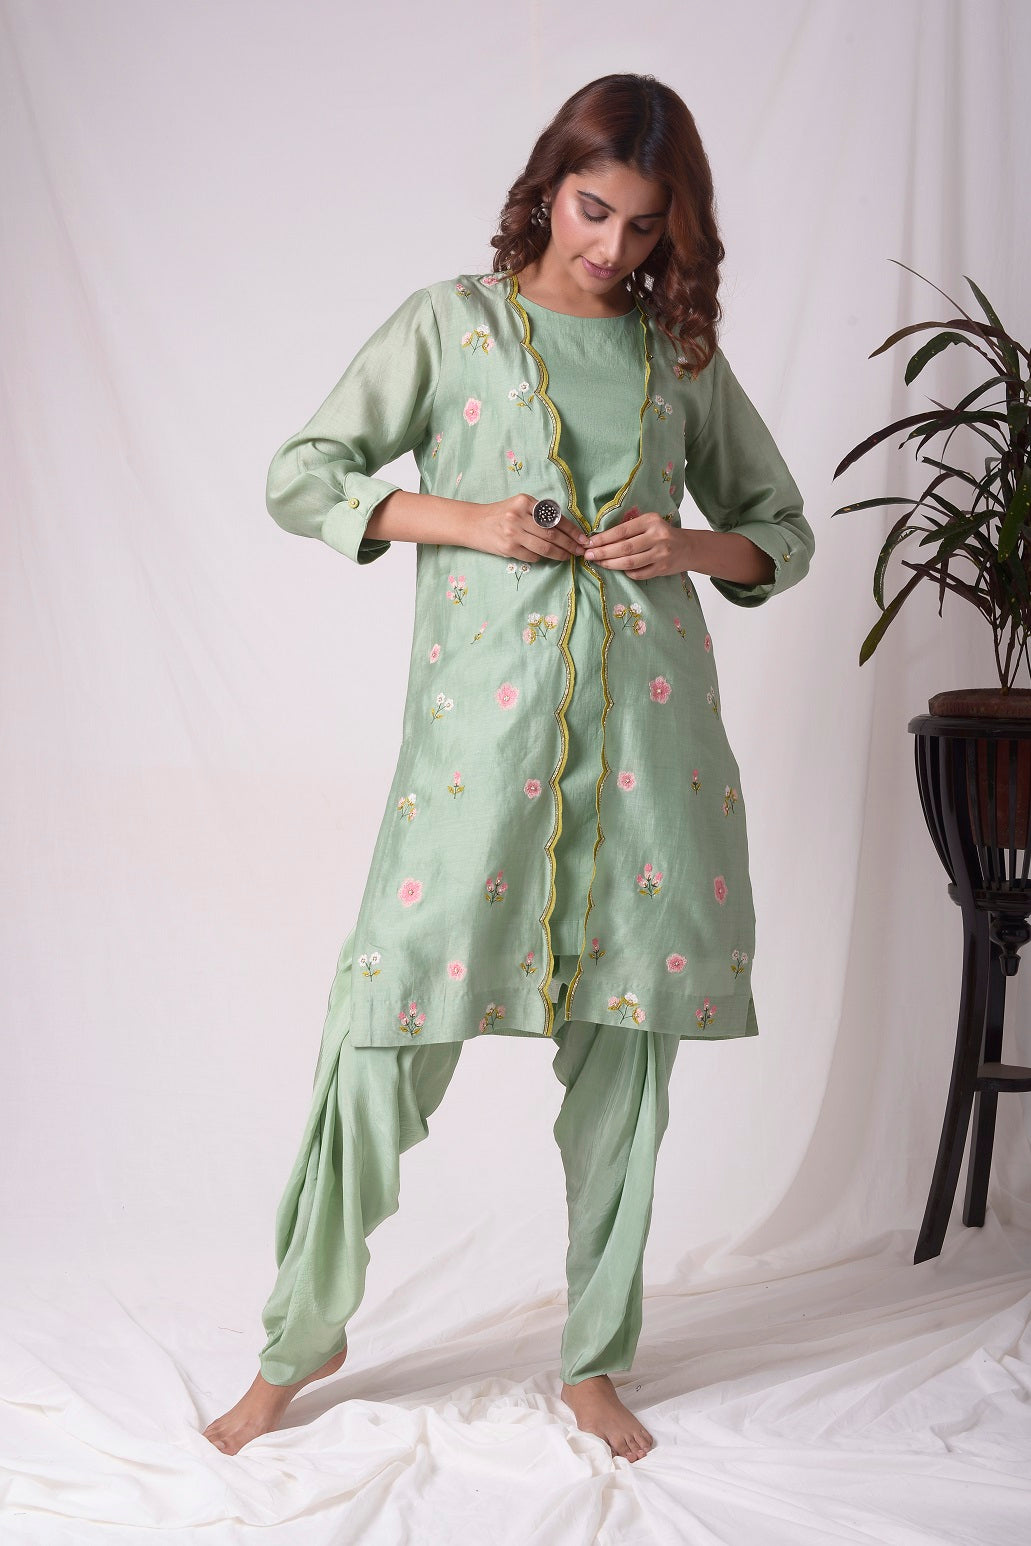 Sage Green Chanderi Suit With Jacket And Dhoti Online in USA-full view-3